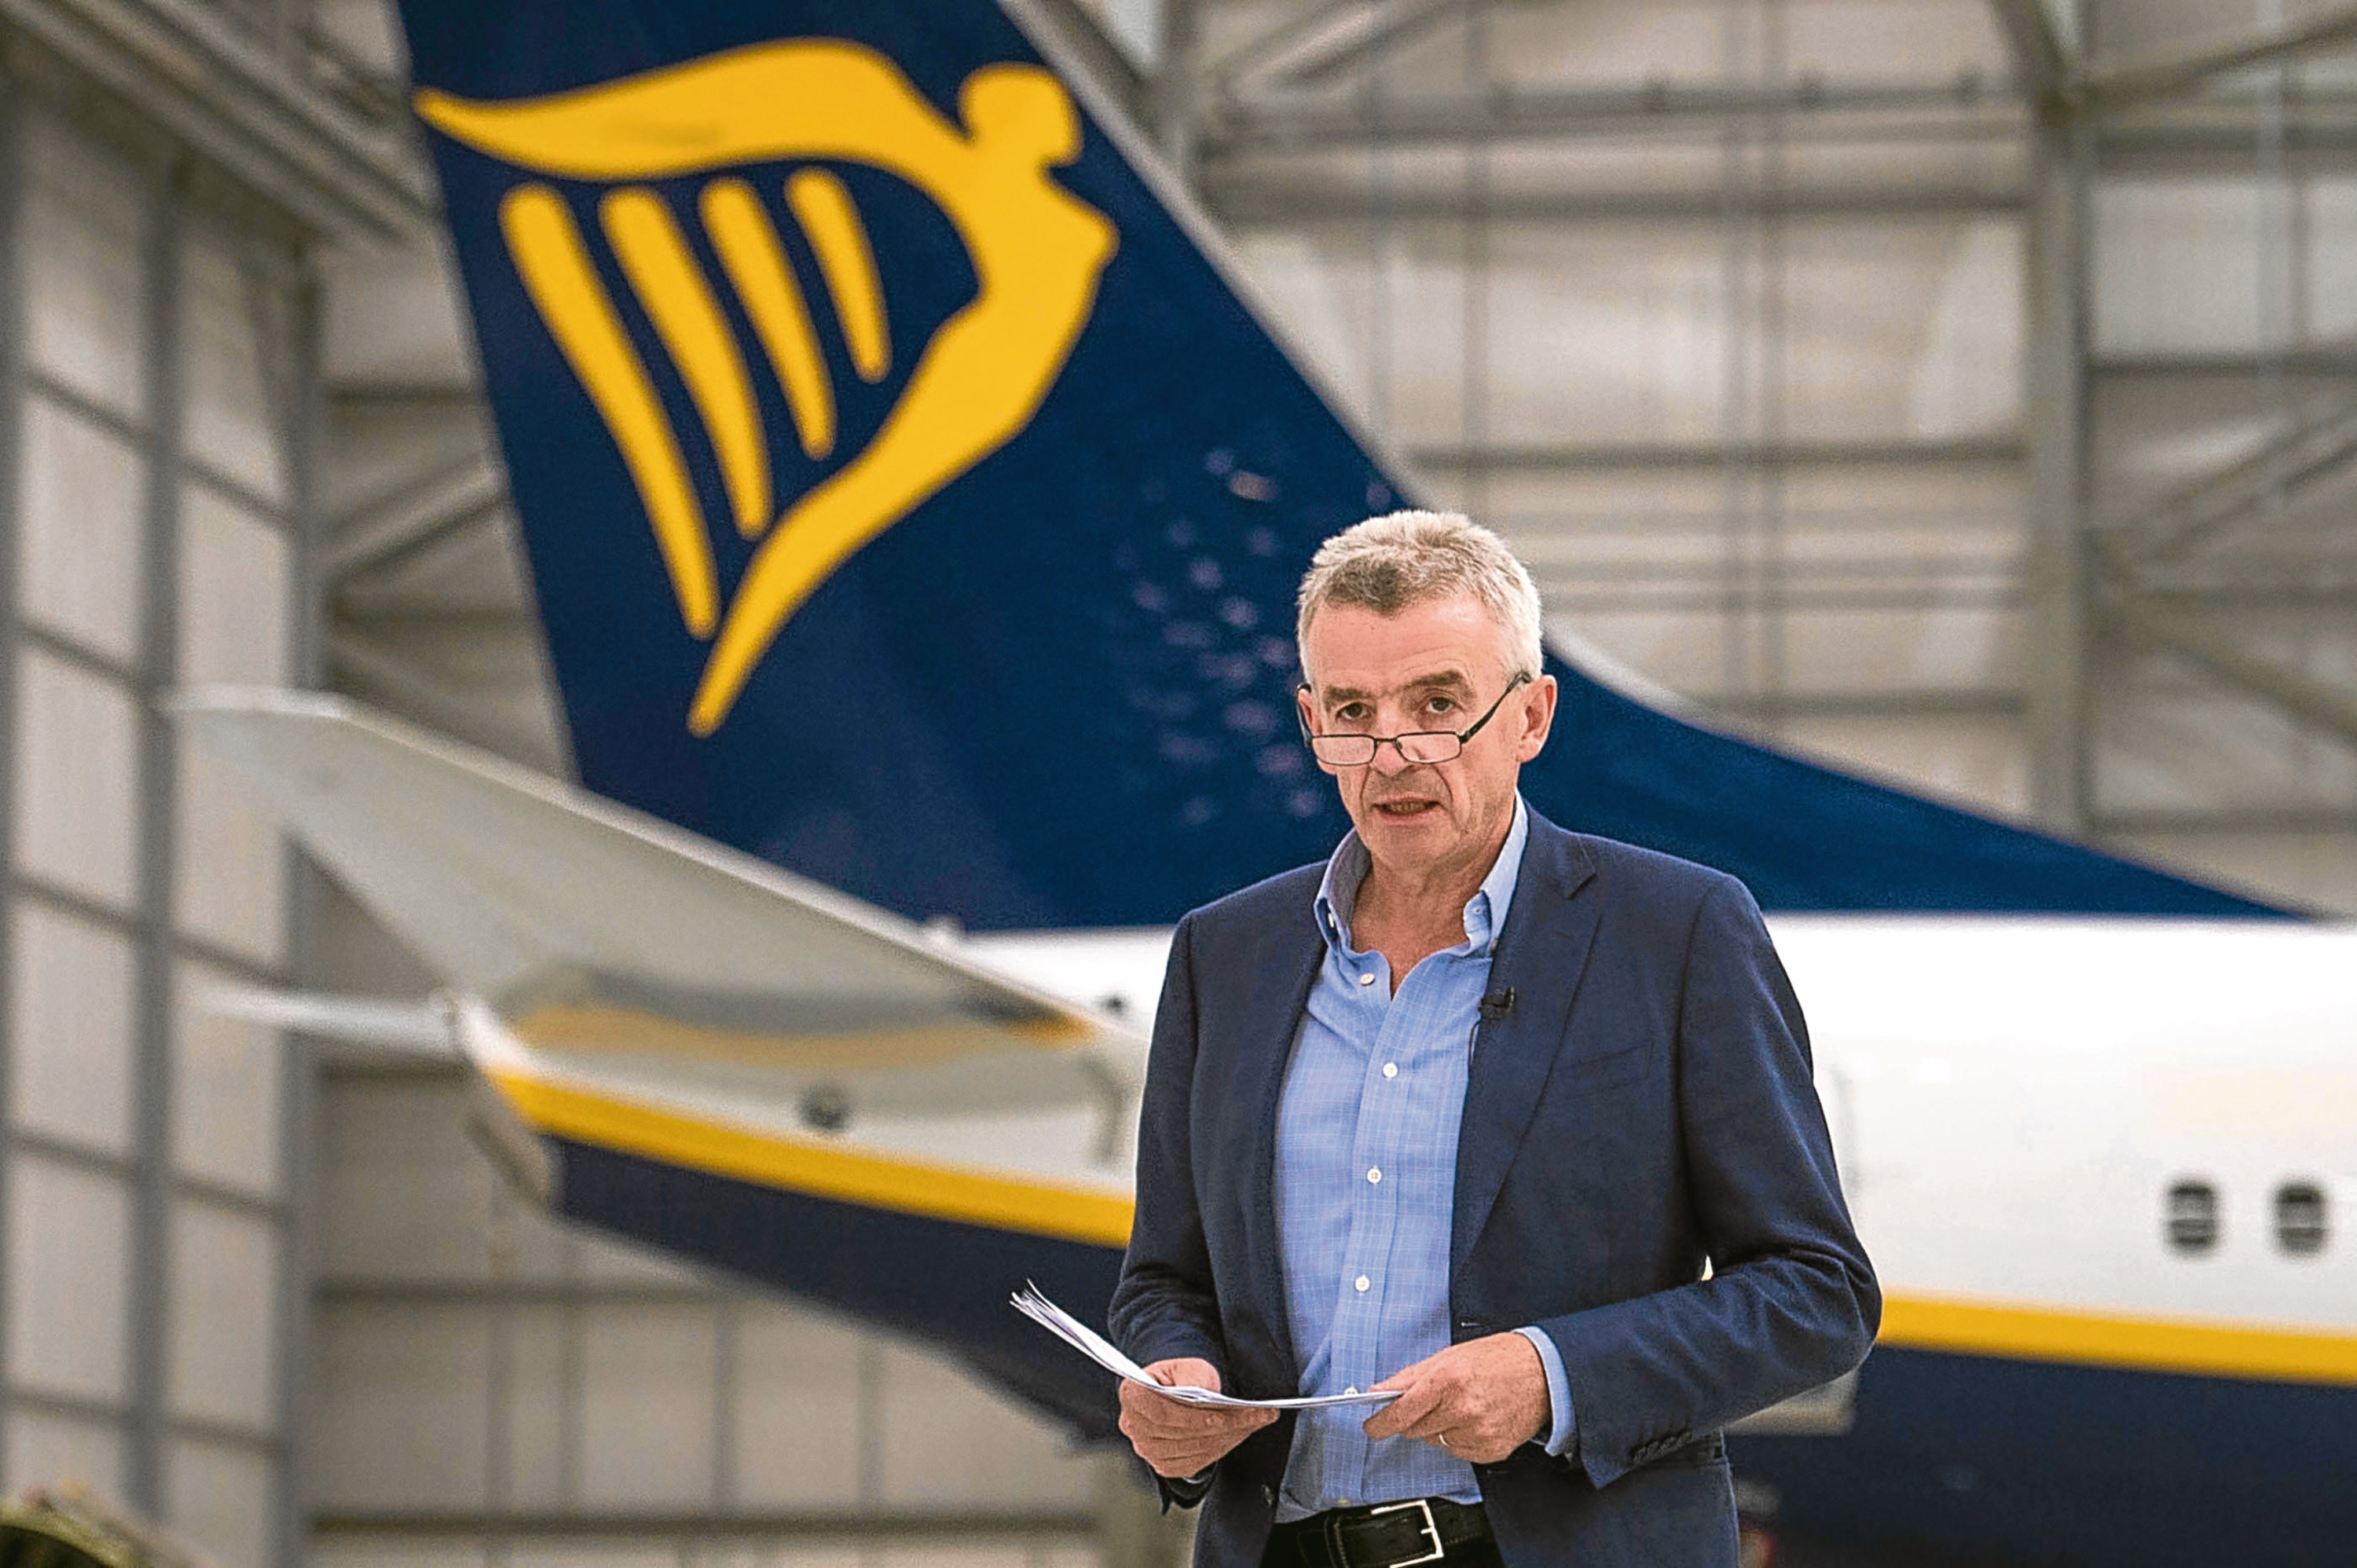 """Ryanair chief executive Michael O'Leary, introduces Chancellor of the Exchequer George Osborne, Ed Balls and Sir Vince Cable, in the Ryanair hangar at Stansted Airport, where the Chancellor said that 450 jobs and almost £1 billion in investment announced by Ryanair would be """"at risk if we left the EU"""". PRESS ASSOCIATION Photo. Picture date: Monday May 16, 2016. The Ryanair boss warned that the budget airline will be forced to scale back British investment if the country votes to leave the European Union. Appearing on a platform with Chancellor George Osborne at Stansted Airport, Mr O'Leary said that inward investment will be lost to competitor EU member states such as Ireland and Germany if Britain votes for Brexit. He also announced the creation of 450 new jobs in Britain as part of a 1.4 billion US dollars (£976 million) investment into the Ryanair's 13 UK bases. See PA story CITY Ryanair EU. Photo credit should read: Stefan Rousseau/PA Wire"""